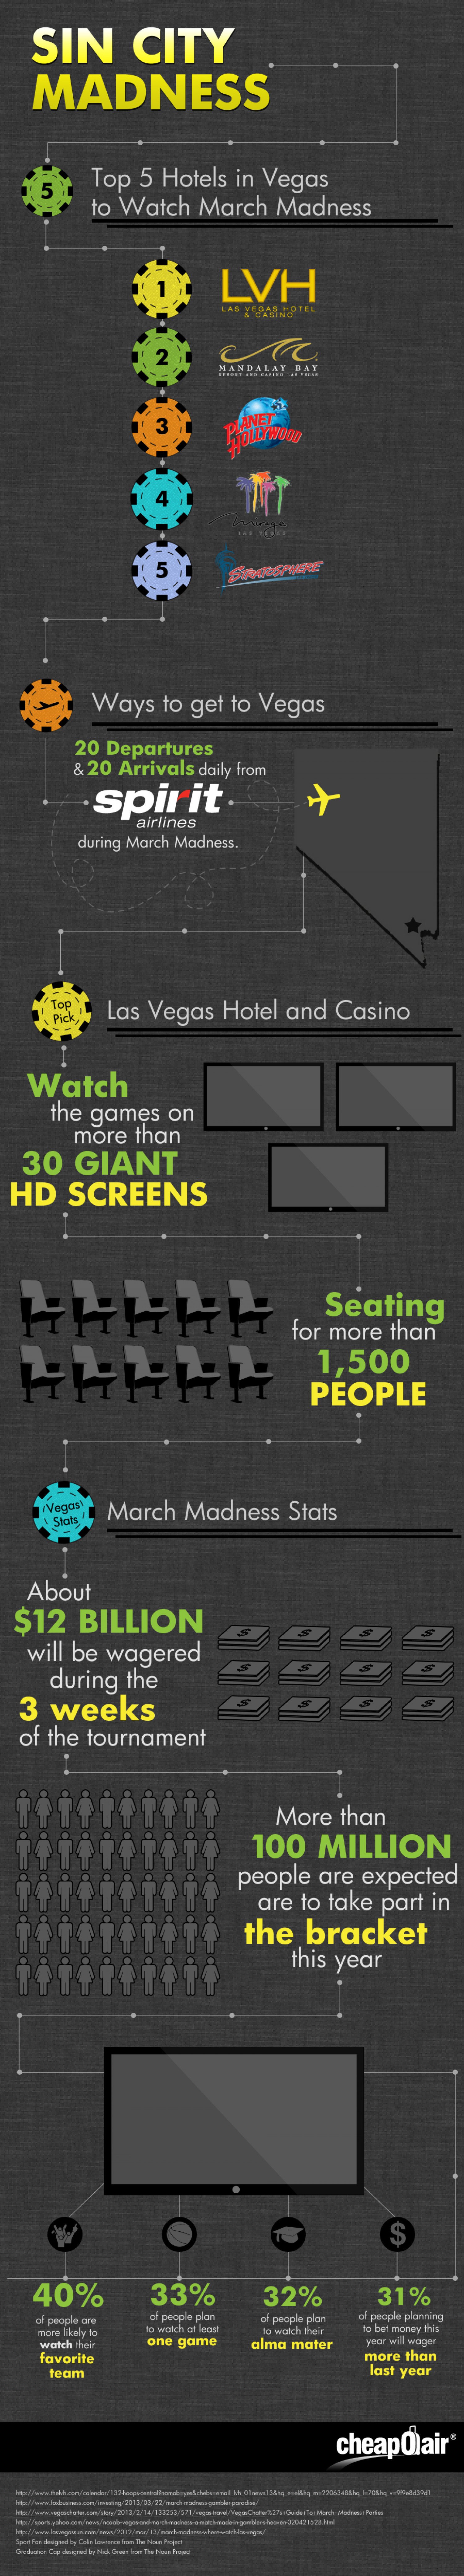 Top 5 Las Vegas Hotels for March Madness Infographic